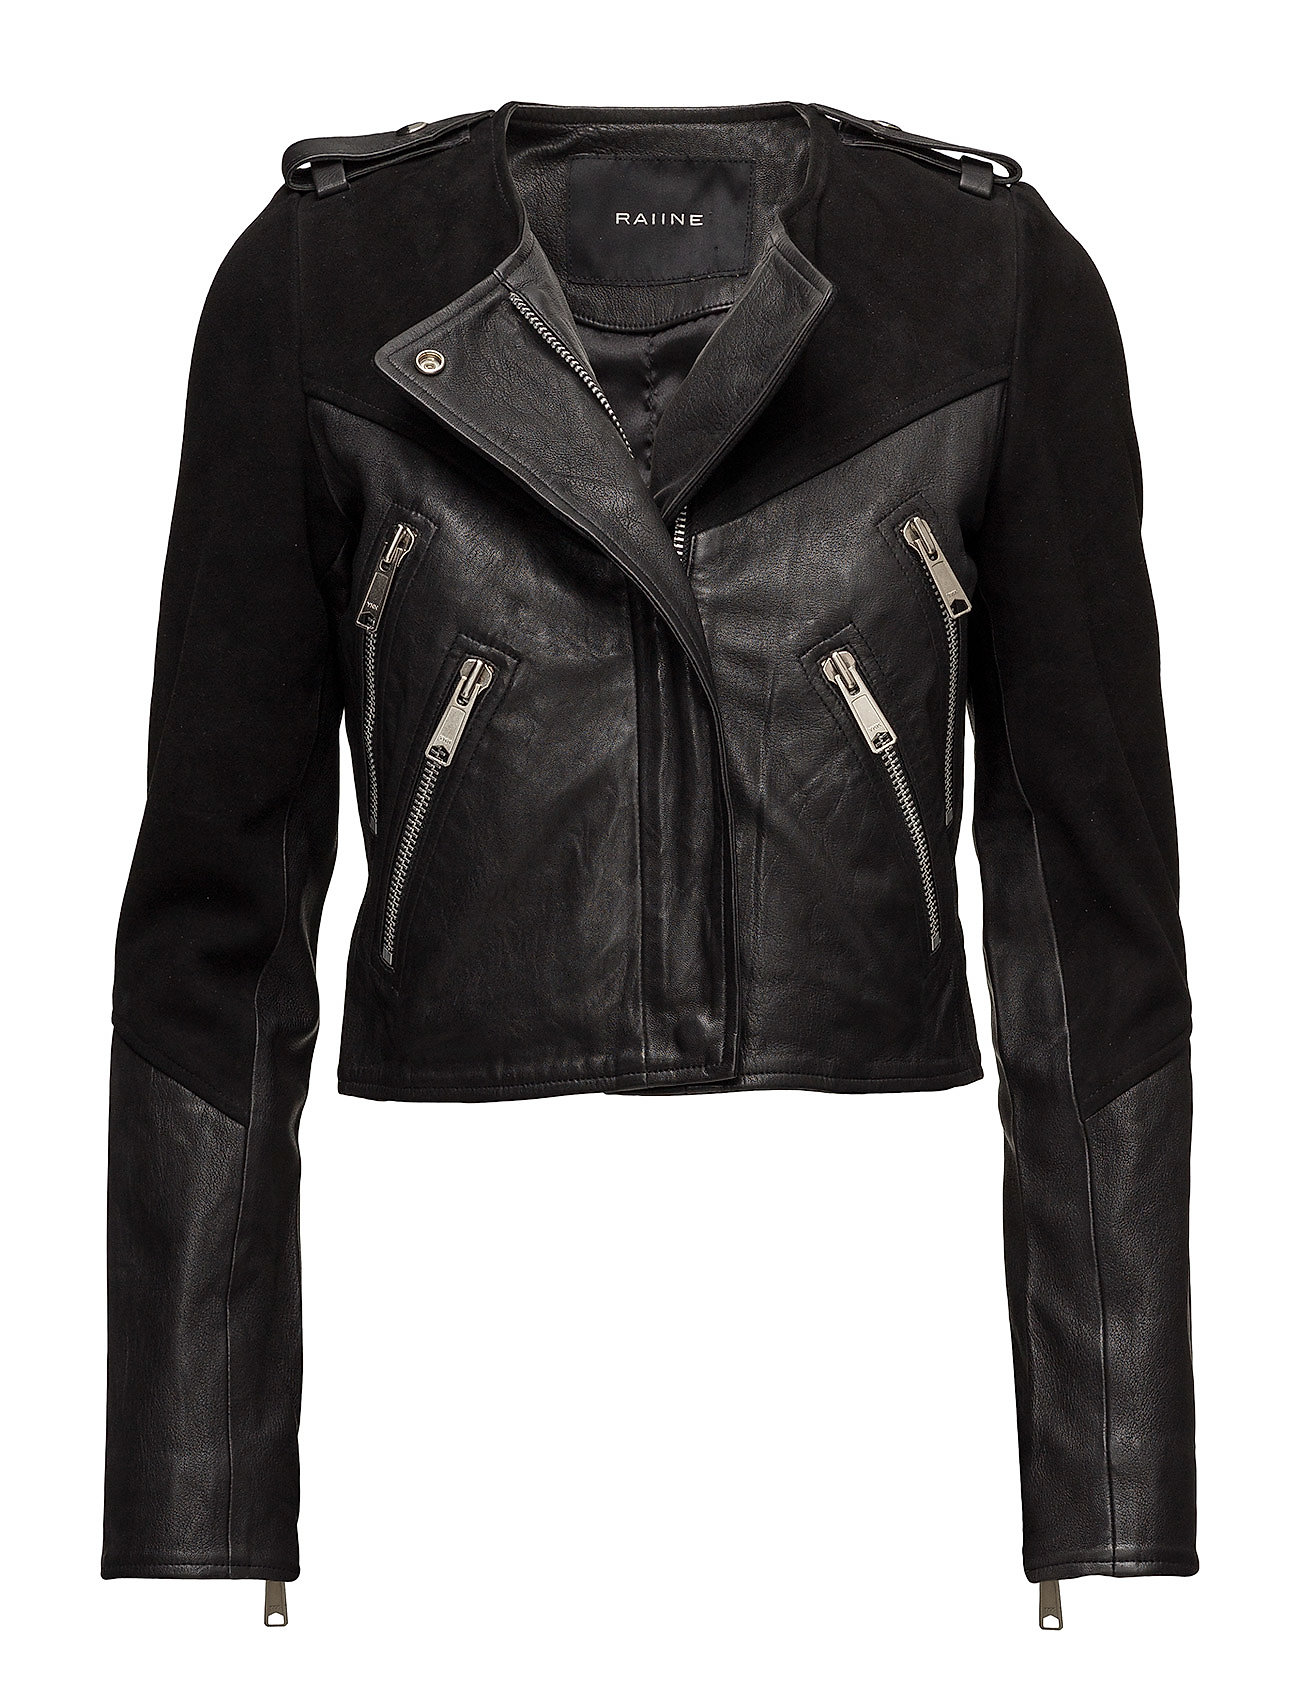 Image of Clarita Leather Jacket (2962410655)